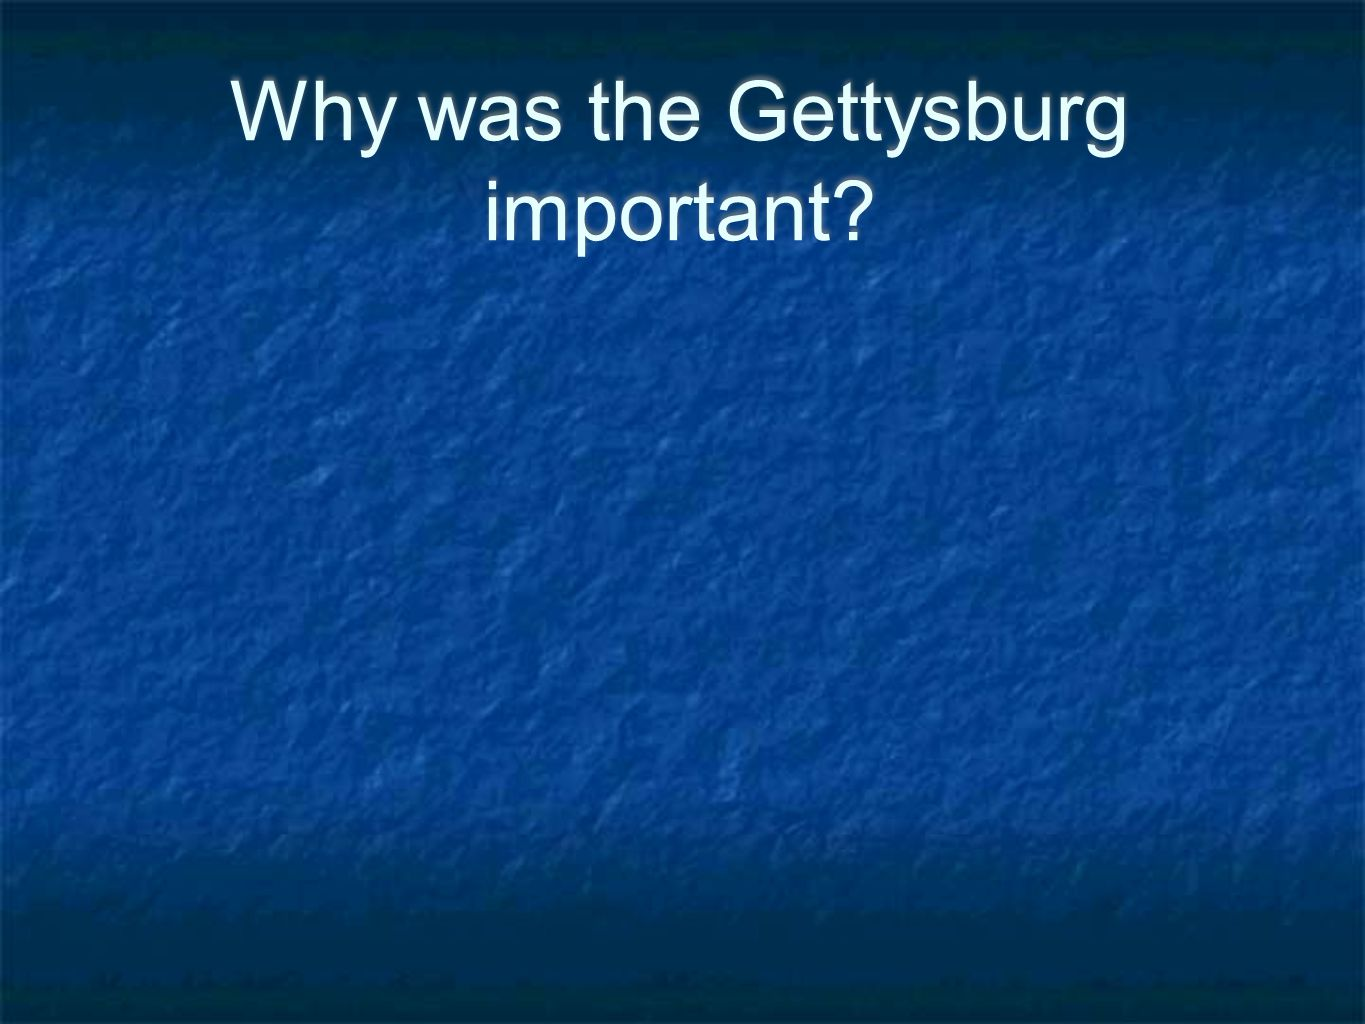 Why was the Gettysburg important